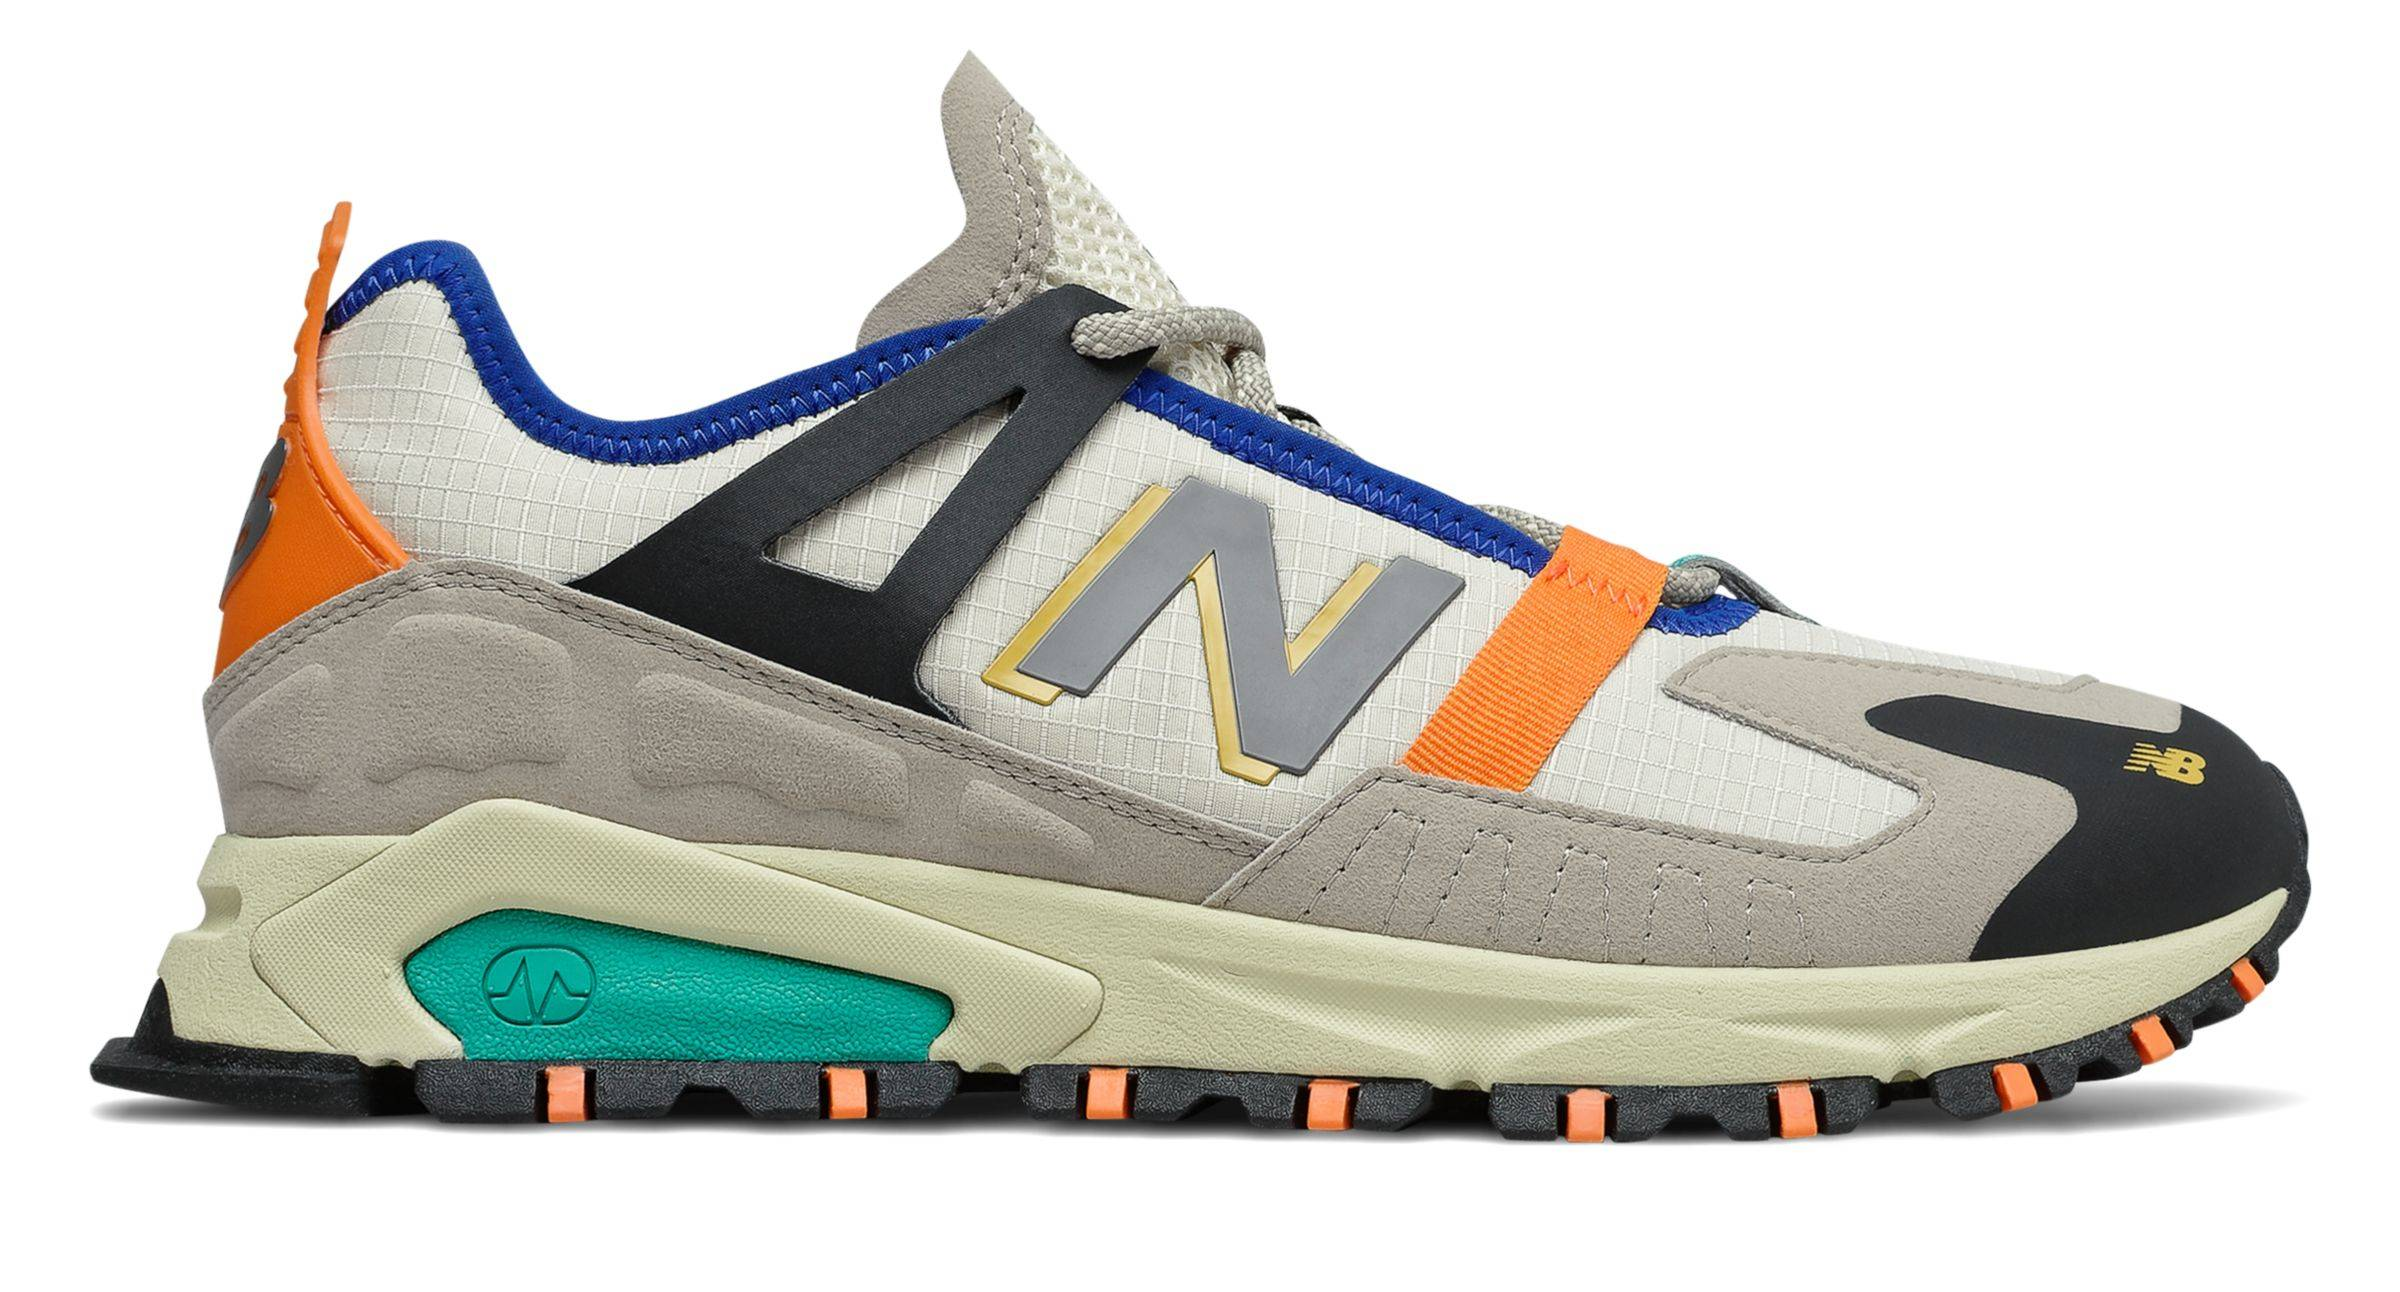 New Balance Men's XRCT Shoes Grey with Green  - Grey with Green - Size: 9